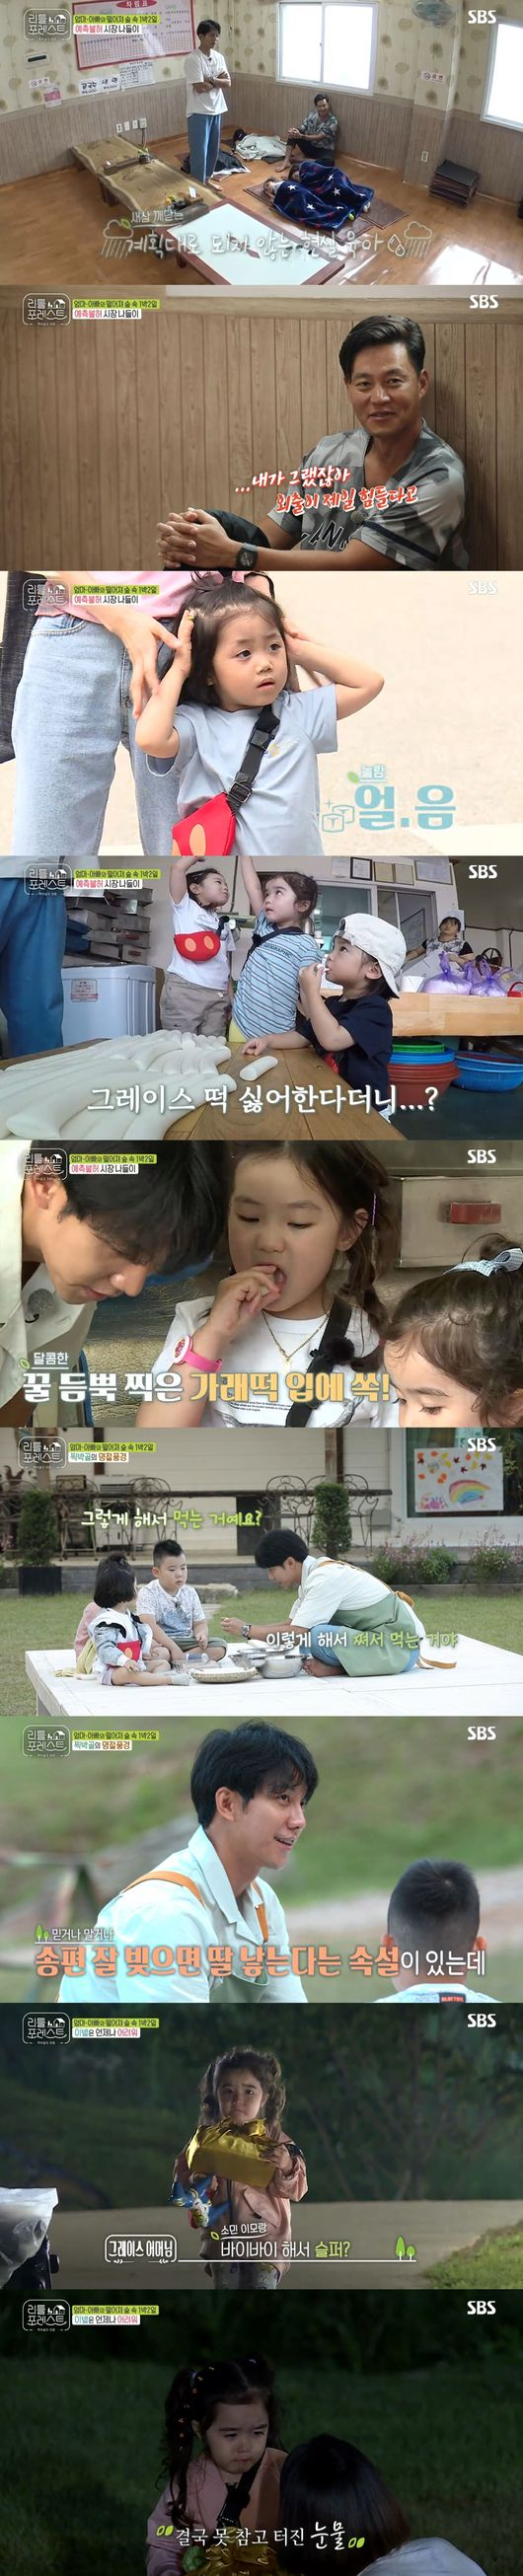 """<p> 'Little forest'is per minute, with a maximum request rate of 6. Up to 1% soared.</p><p>Over the past 17 broadcast of SBS for 'Little Forest'in the little ones and the Thanksgiving market environment in the spiral in the photo, Lee Seung-gi, Park or so, Jung So Min appear.</p><p>Caring for people and Little People on food the necessary ingredients in order into the market headed. Uncle, aunt along with a first market outing on the Little People is hilarious sometimes we did not. But also excited for a moment, in a deep sleep in the sky the Little People, Lee Seung-gi, this is the """"take the kids to if you have even one thought of as being nothing,""""he sighed. Lee Seung-gi and this in with the Little People in the cafeteria laid down, and each must sigh and turned.</p><p>That night or with a small this, for standard and together with the puffed rice is fried and spent an enjoyable time. Awaken Eugene, Alias Grace, the temperature is Lee Seung-gi along with a market with a mill headed. Little People freshly brought down rice cake in honey eaten and happy. On the market since the hot dogs people eat lunch together I eat and fun outing this was.</p><p>For after returning home they Songpyeon and meat such as Thanksgiving making food in her. 'Songpyeon decoction' Lee Seung-gi, uncle of the pilot, depending on the Little People totally sit Songpyeon debt in involved. Thanksgiving food you prepare together as a family is all heartwarming smile was. Especially Lee Seung-gi is """"Songpyeon well debt if the daughters are slow not because""""a few days future daughter read book, laughter said. Little is finished Songpyeon and Thanksgiving food with a hearty evening meal enjoyed.</p><p>Since Little People family holding hands and go back to parting time came. Home was Alias Grace is a stop began to cry. Asking why mom in Alias Grace is not """"small people aunt wants to see""""while crying I was. This scene is per minute viewership 6. Up to 1% soars as 'top of the 1 minute'is accounted fo"""